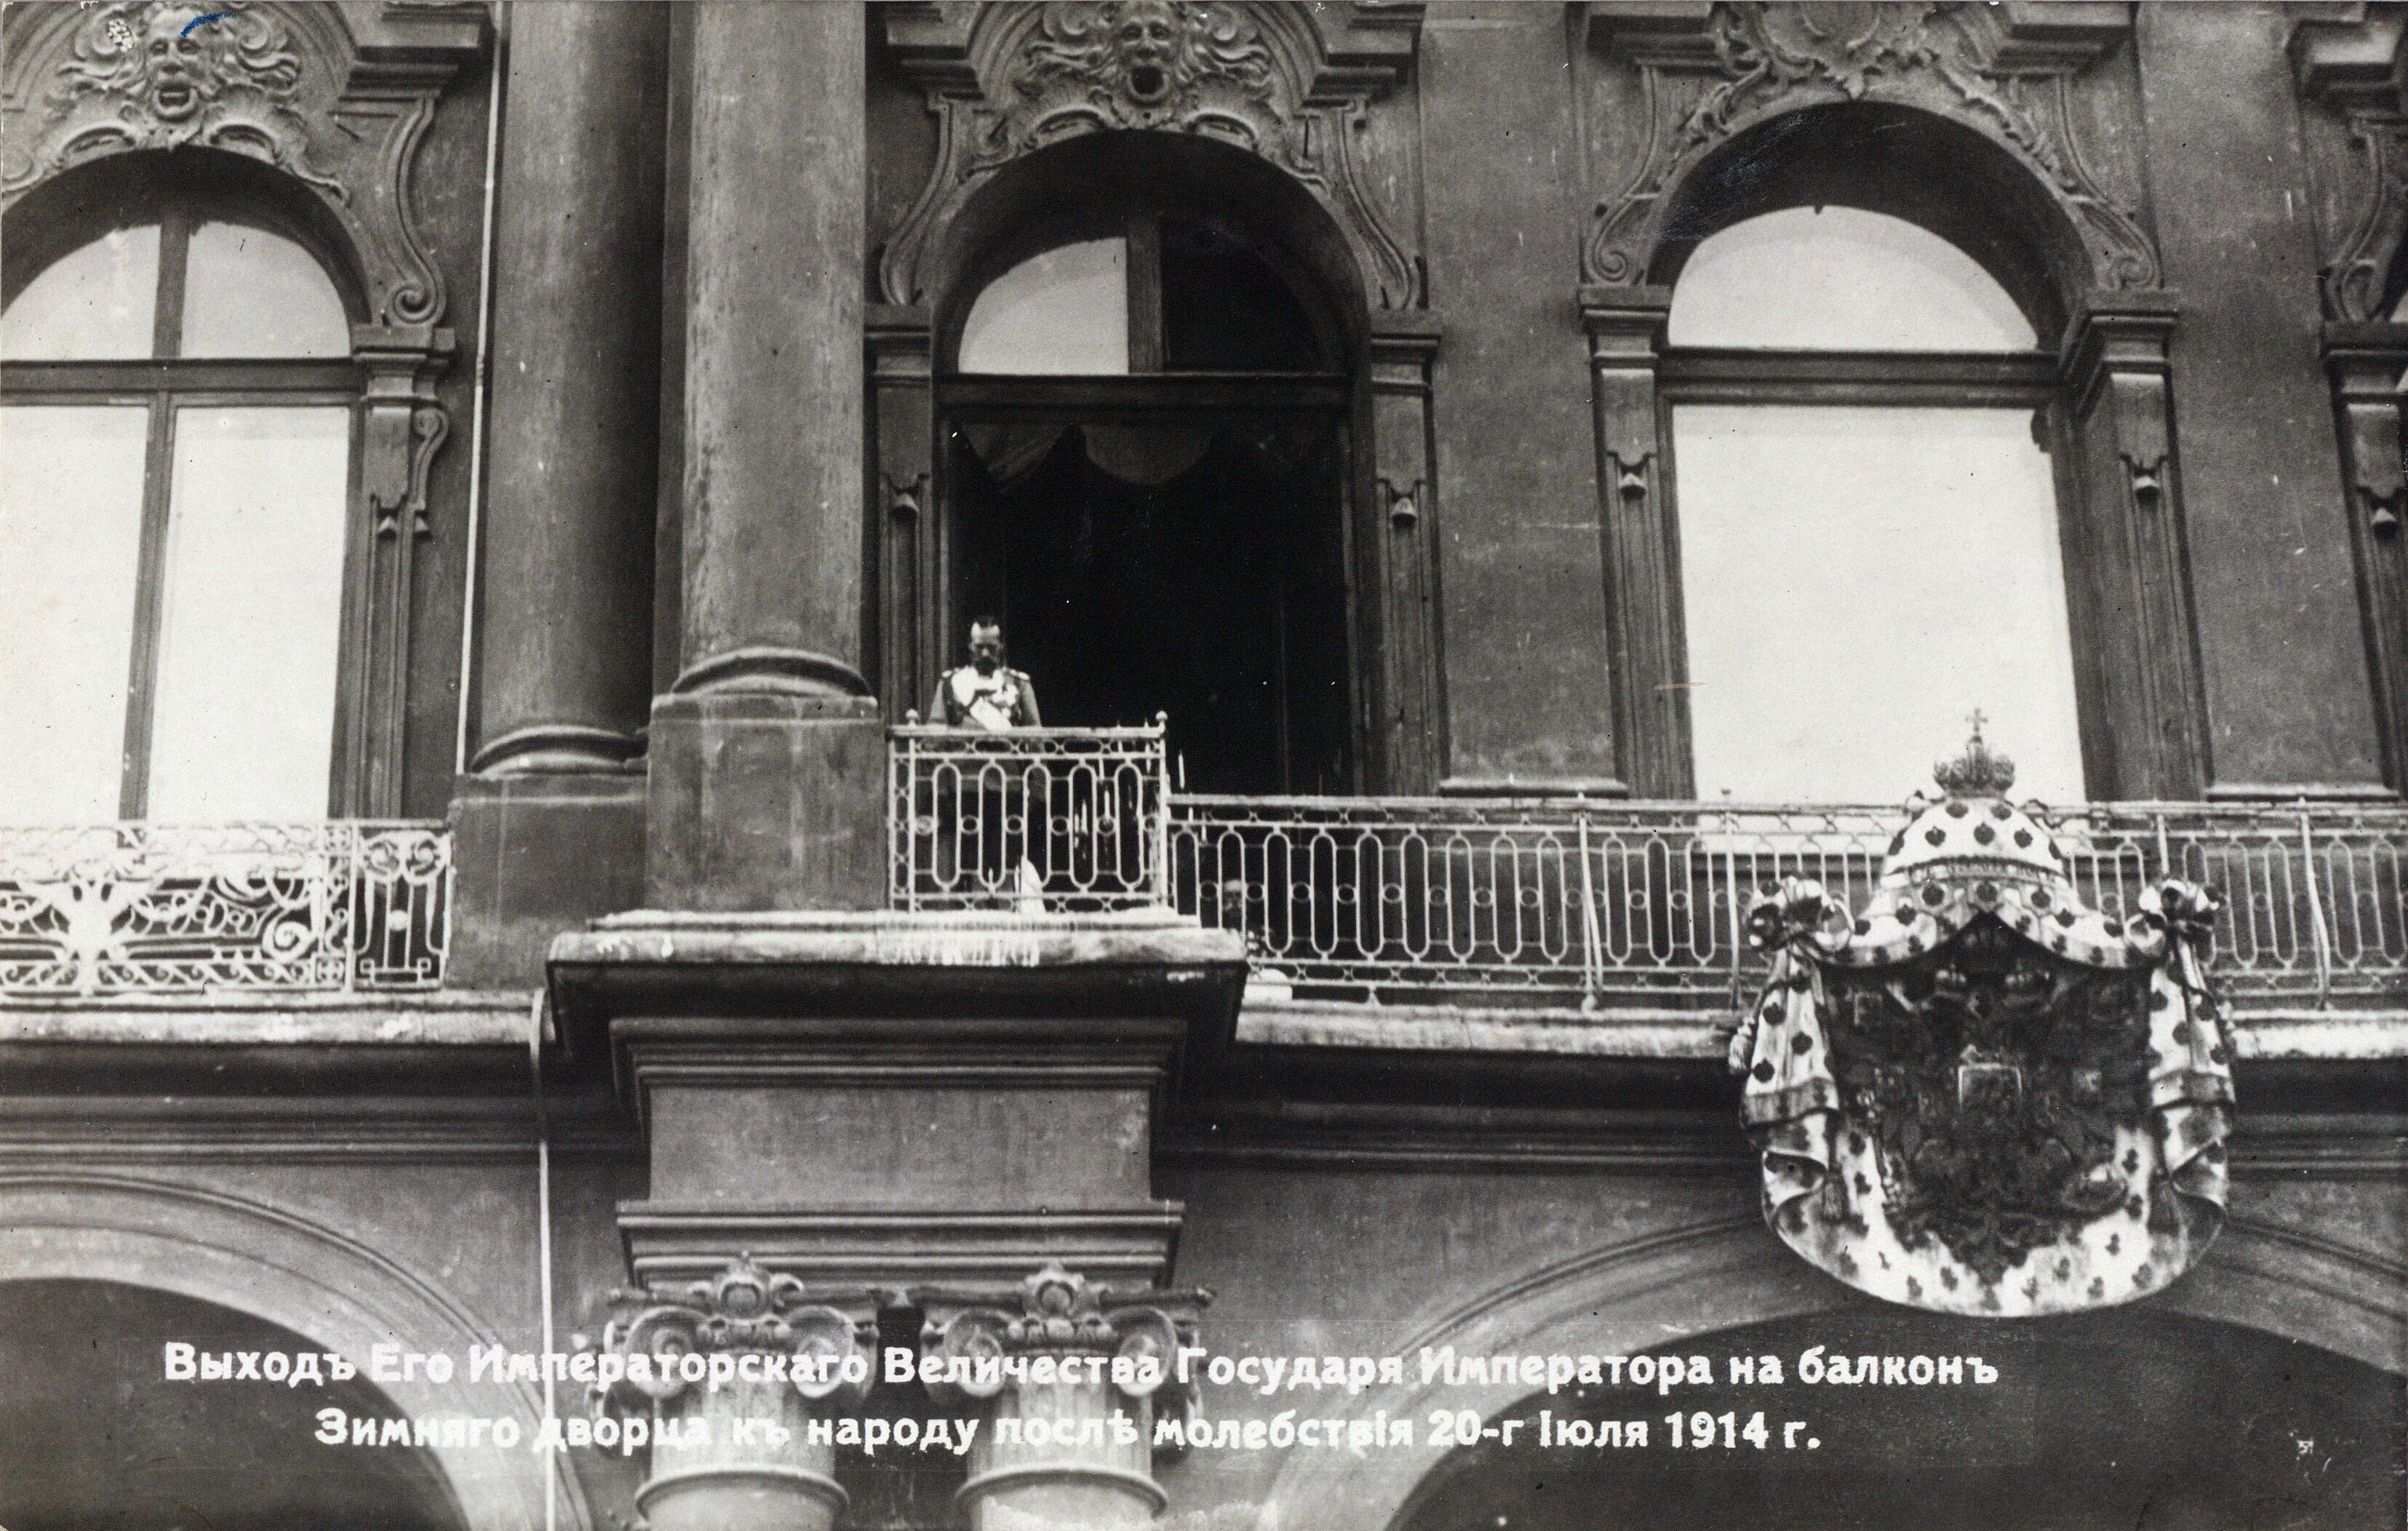 Nicholas II Declares War on Germany from the balcony of the Winter Palace.